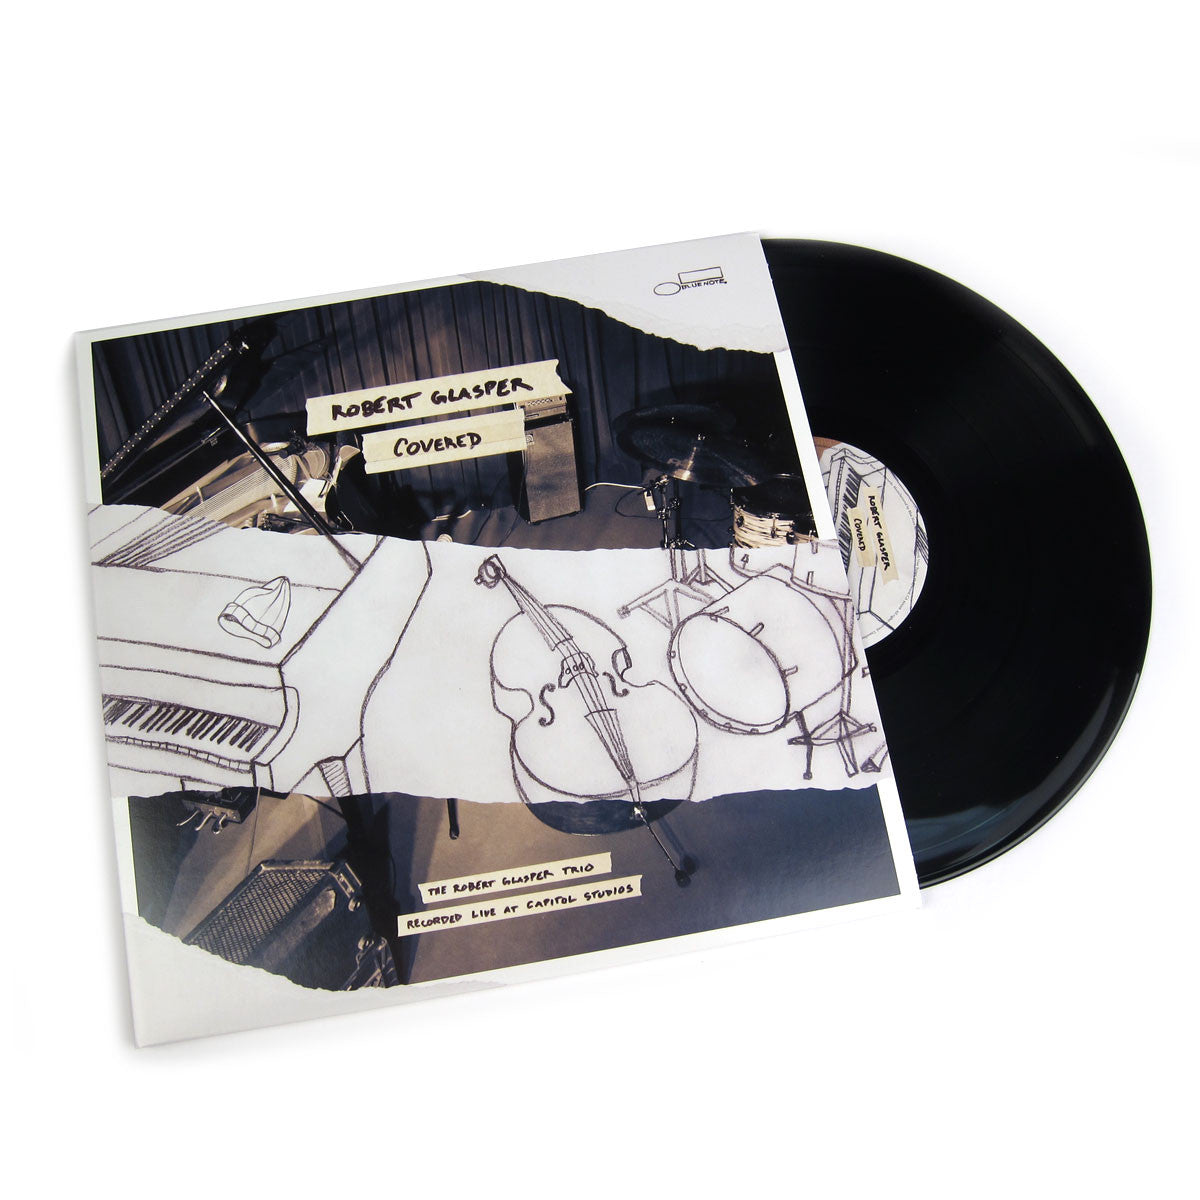 Robert Glasper: Covered (180g) Vinyl 2LP